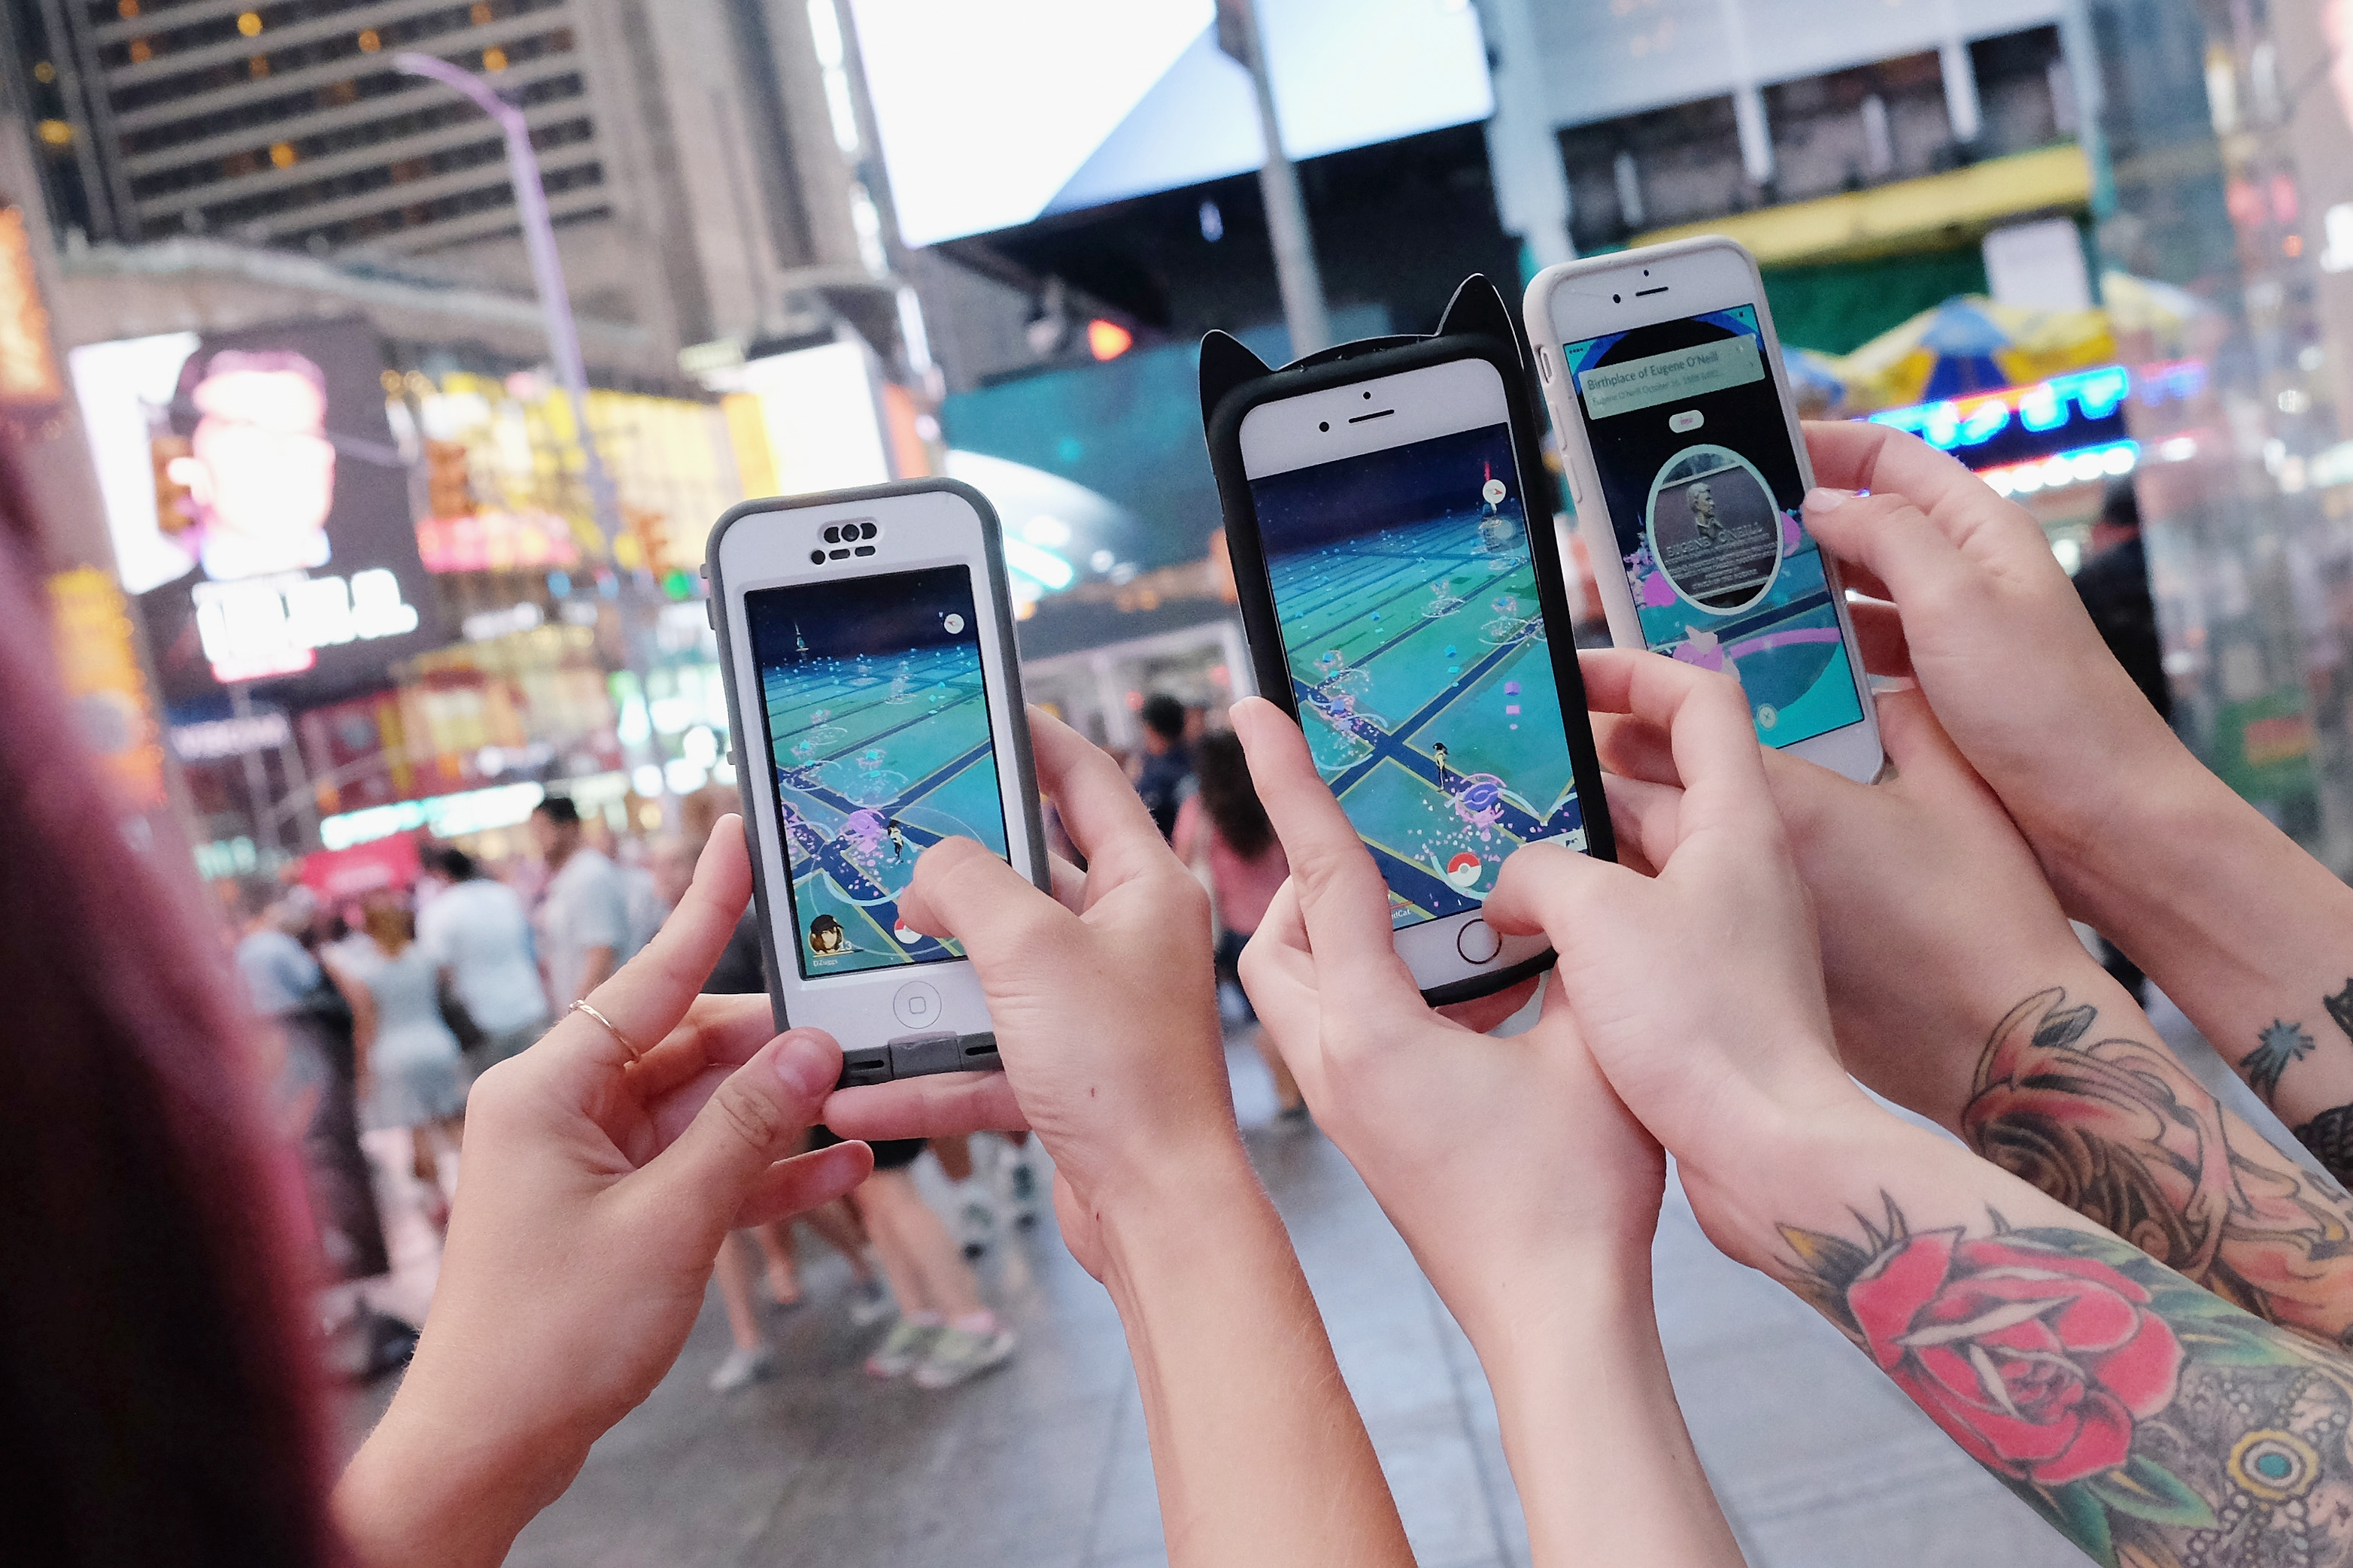 People play Pokemon Go in New York City on July 25, 2016